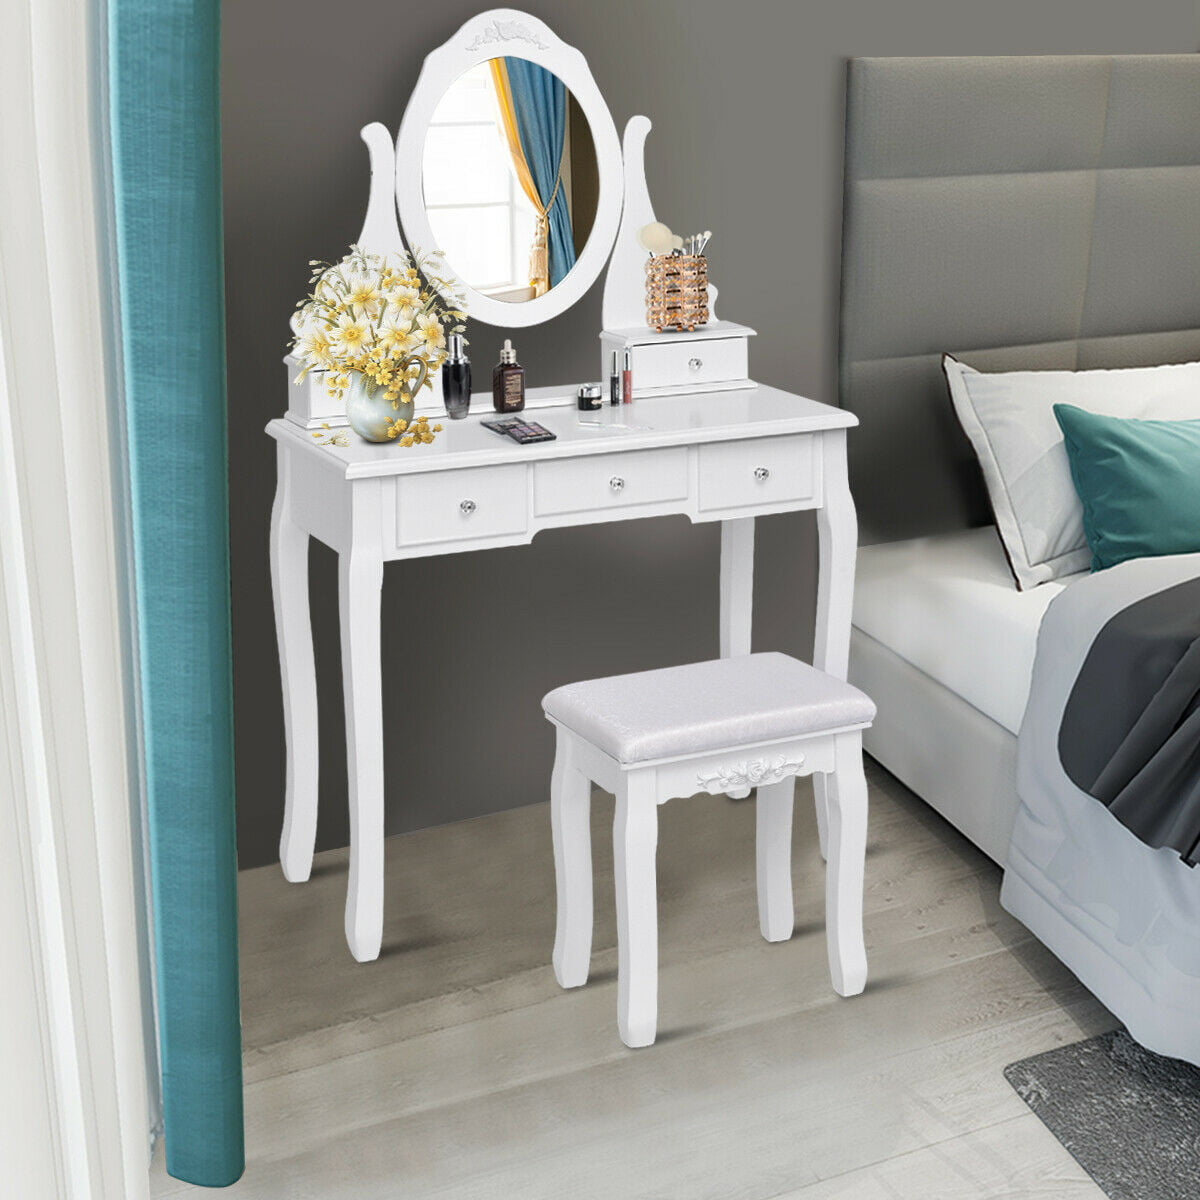 Gymax Bedroom Wooden Mirrored Makeup Vanity Set Stool Table Set White 5 Drawers Walmart Com